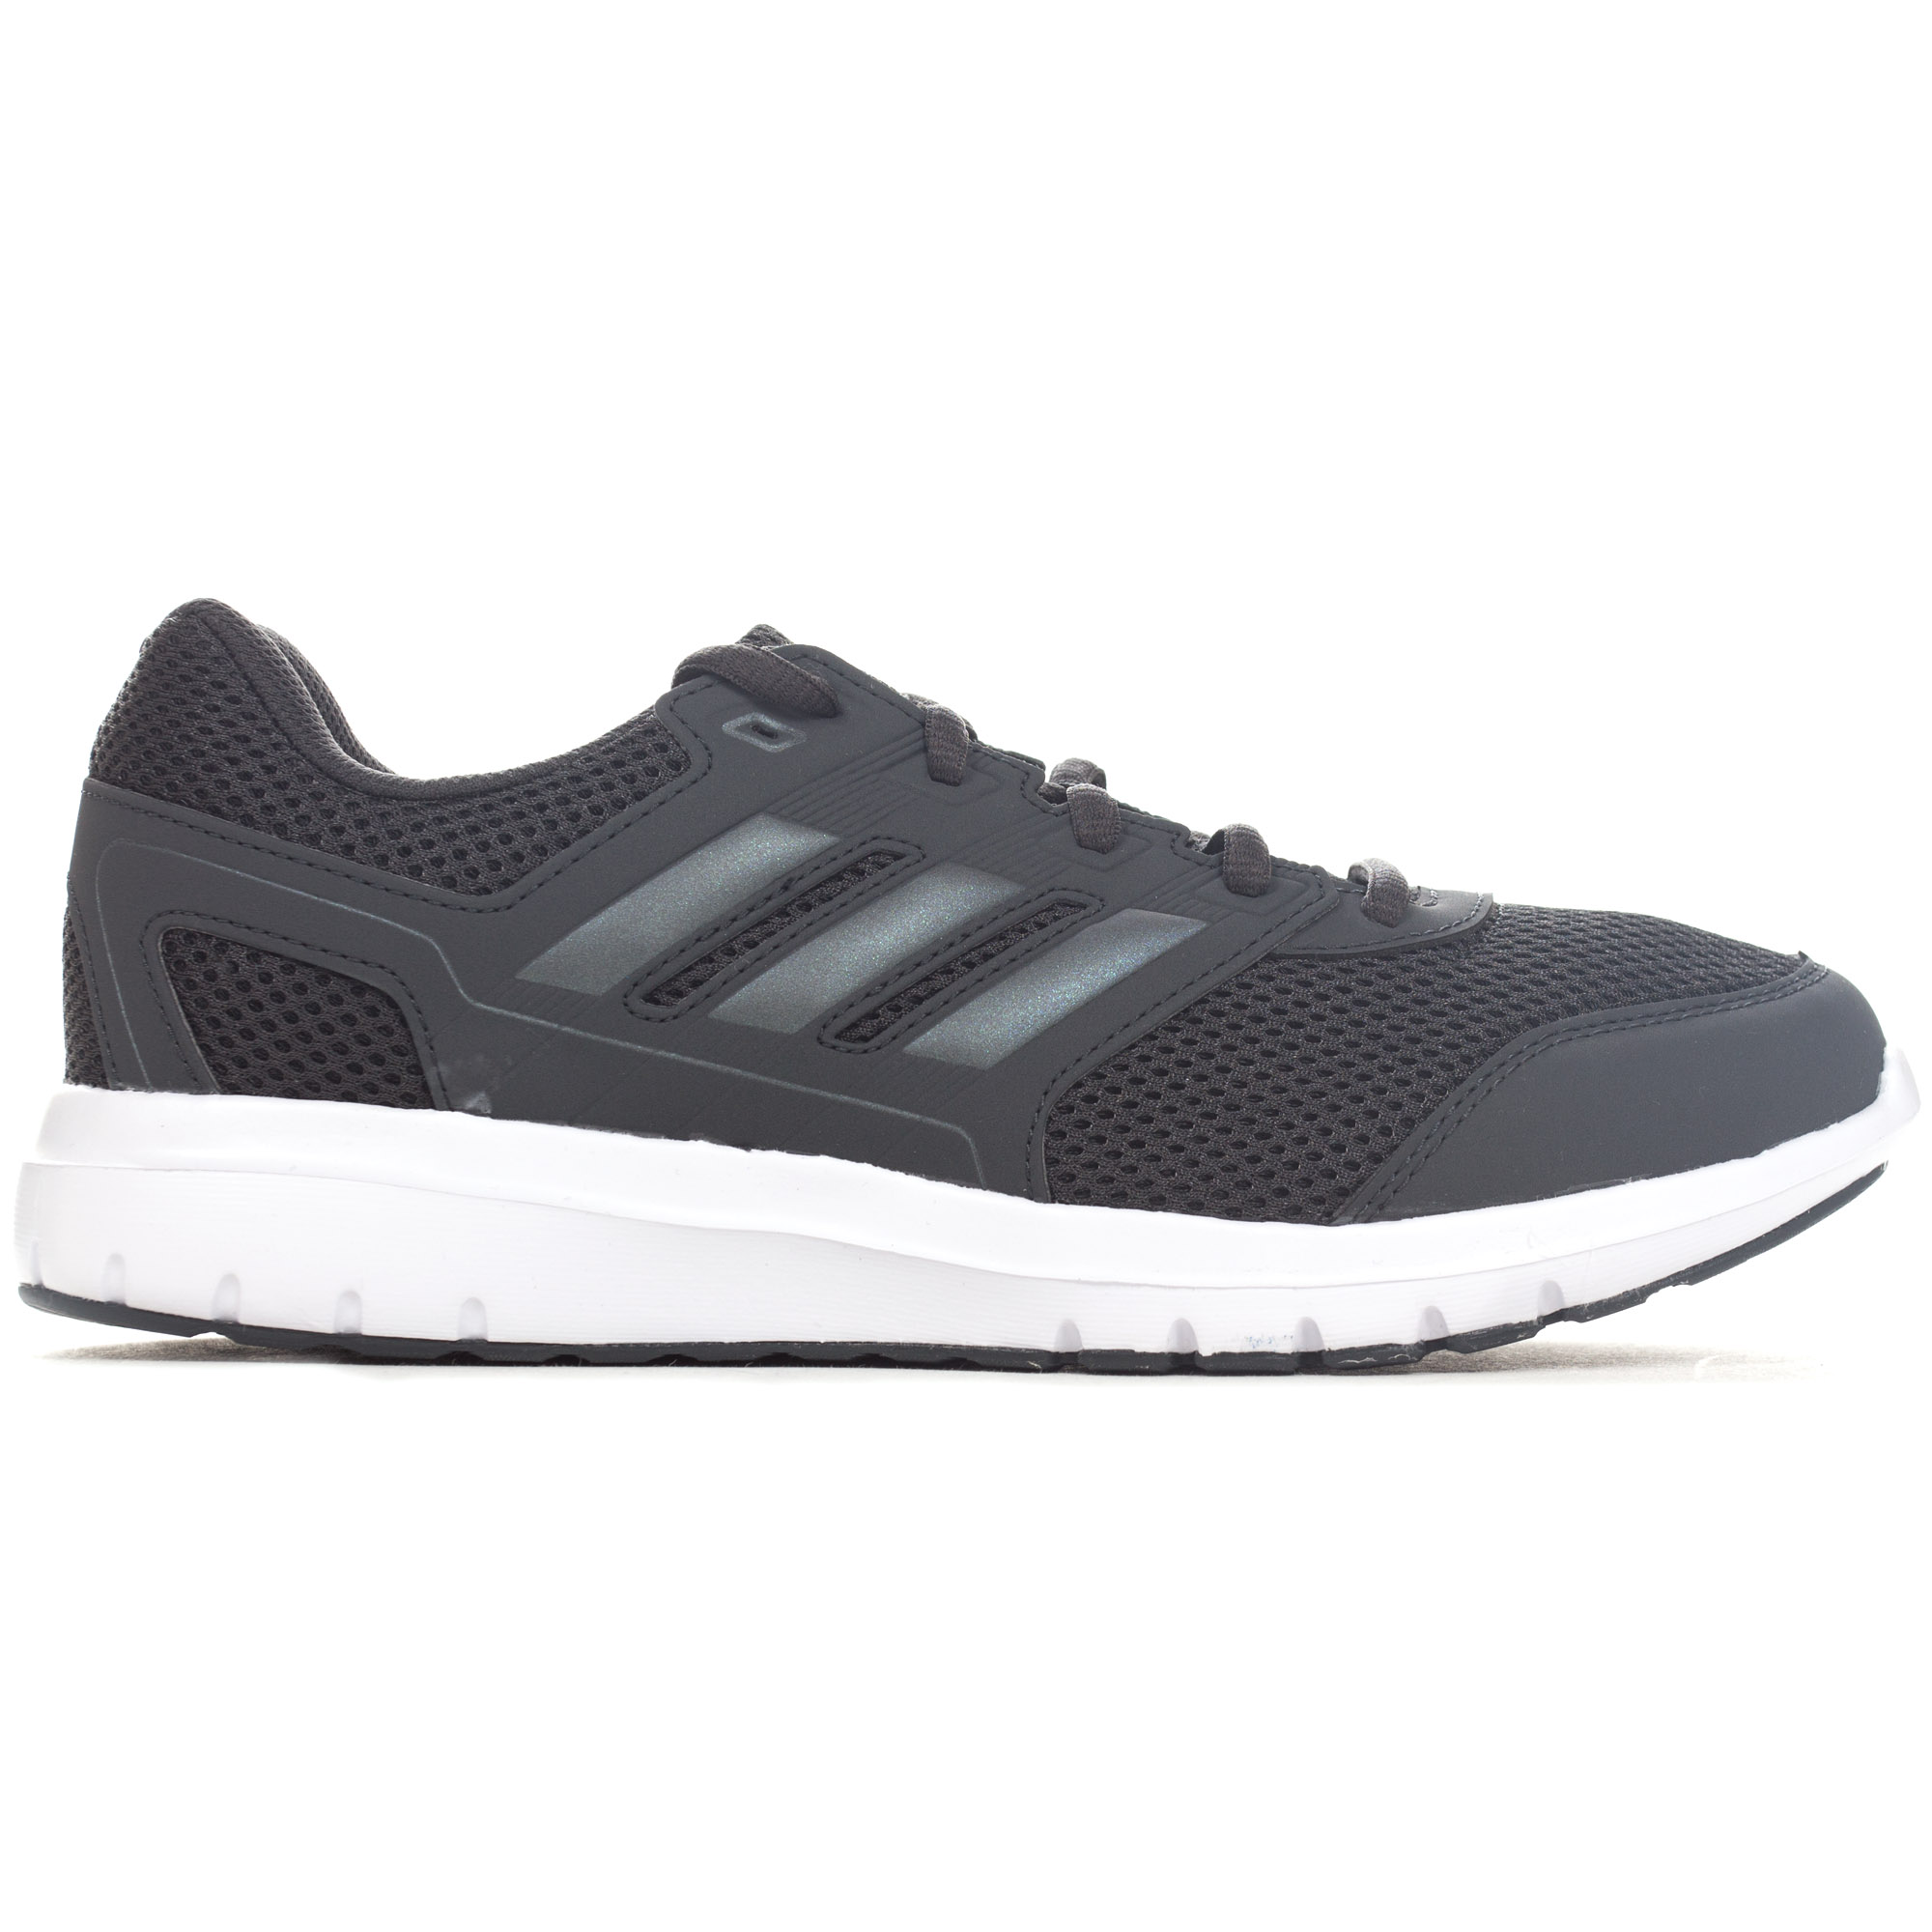 112ff2abfab Details about adidas Duramo Lite 2.0 Mens Running Fitness Trainer Shoe  Carbon Grey